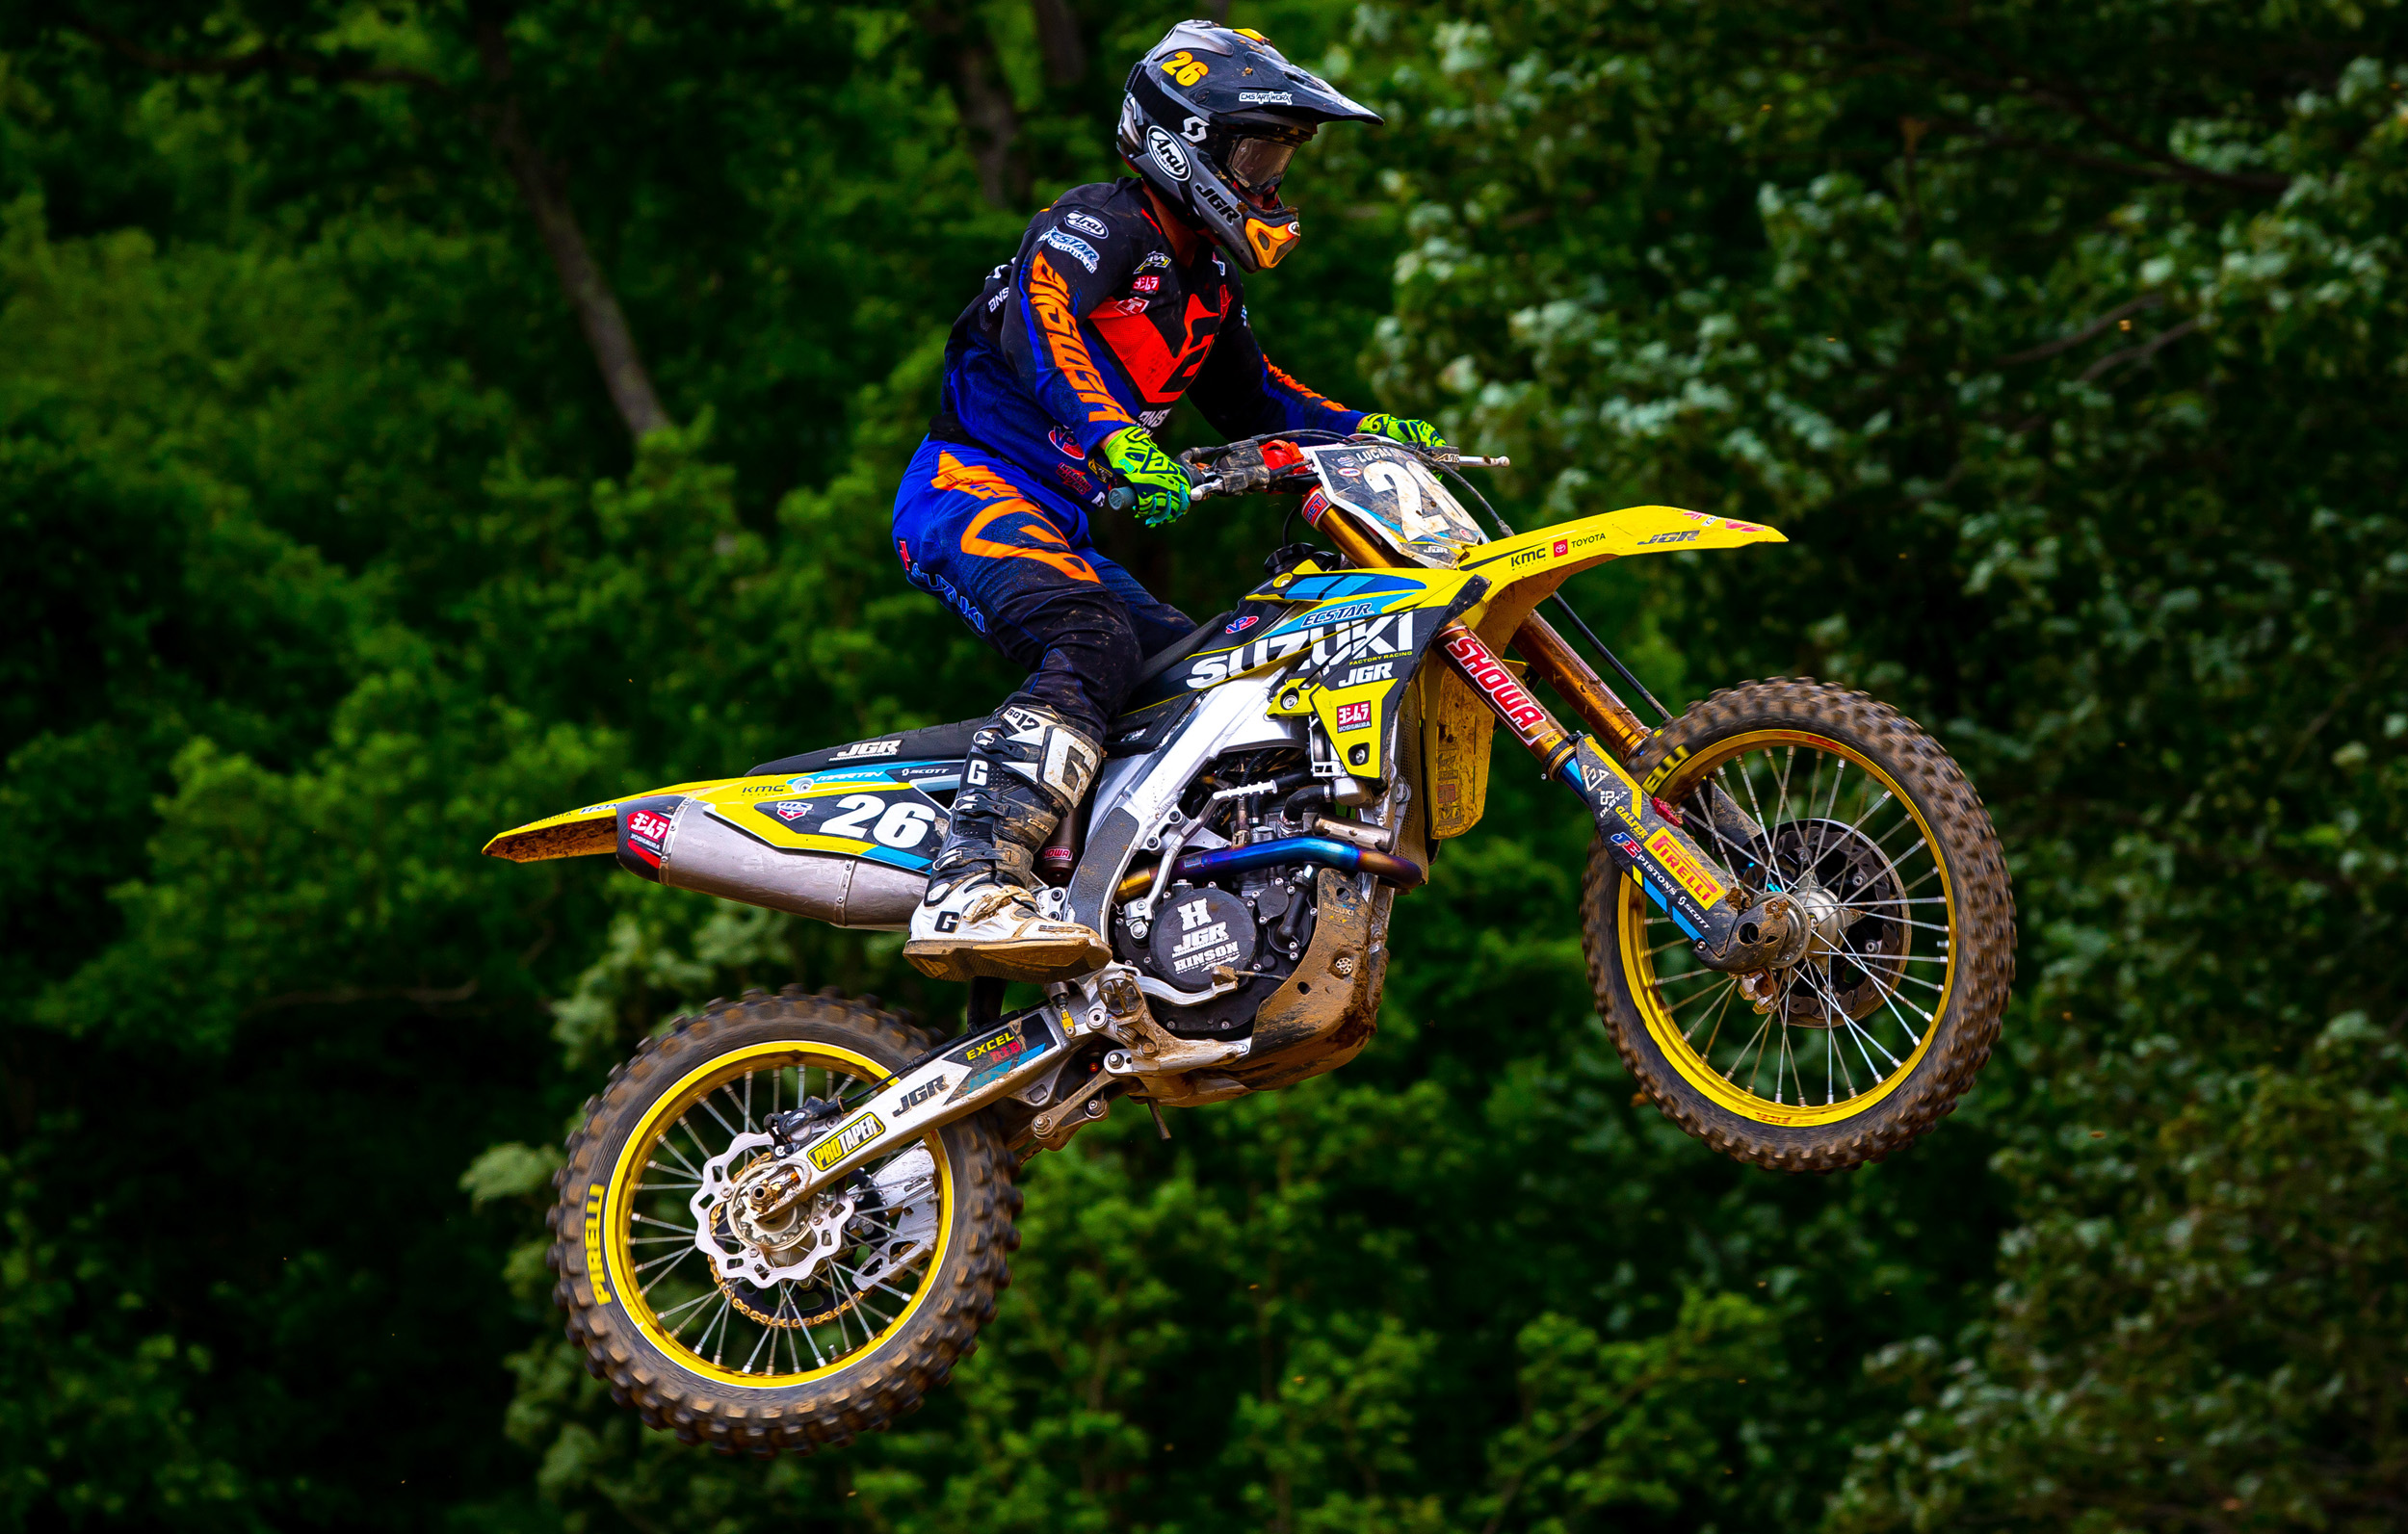 Alex Martin (#26) soars towards the checkered flag on his RM-Z250 - High Point National